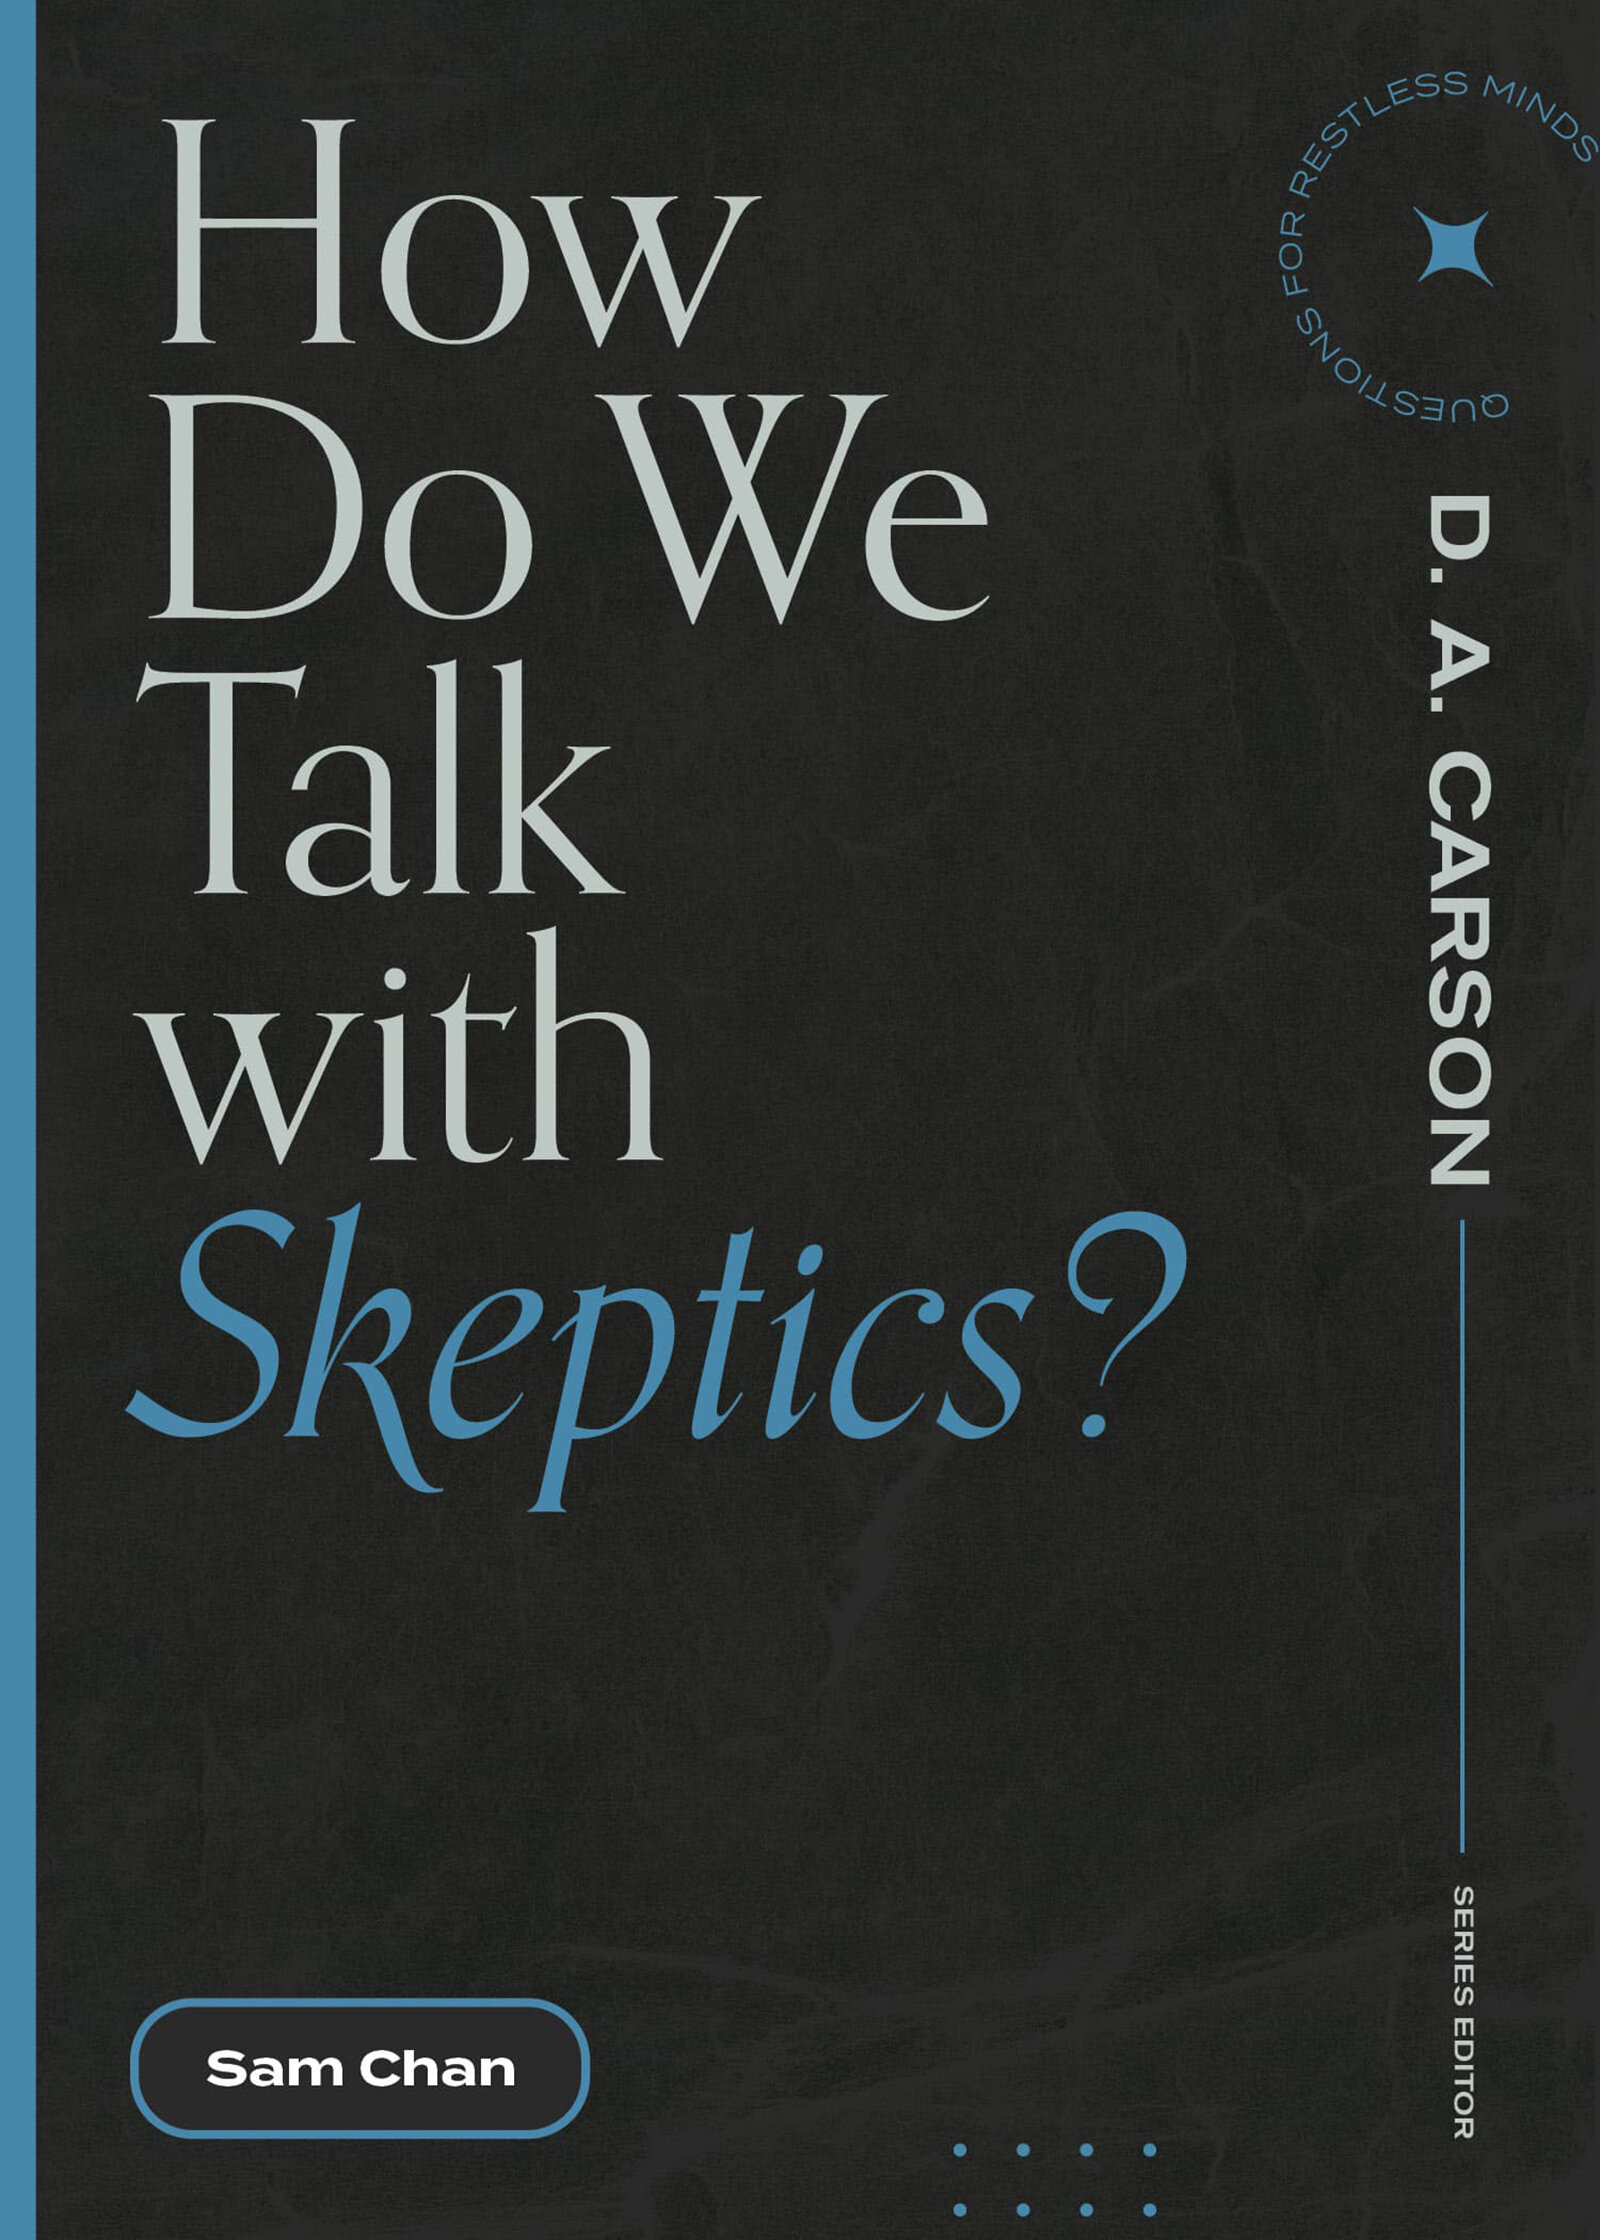 How Do We Talk with Skeptics?